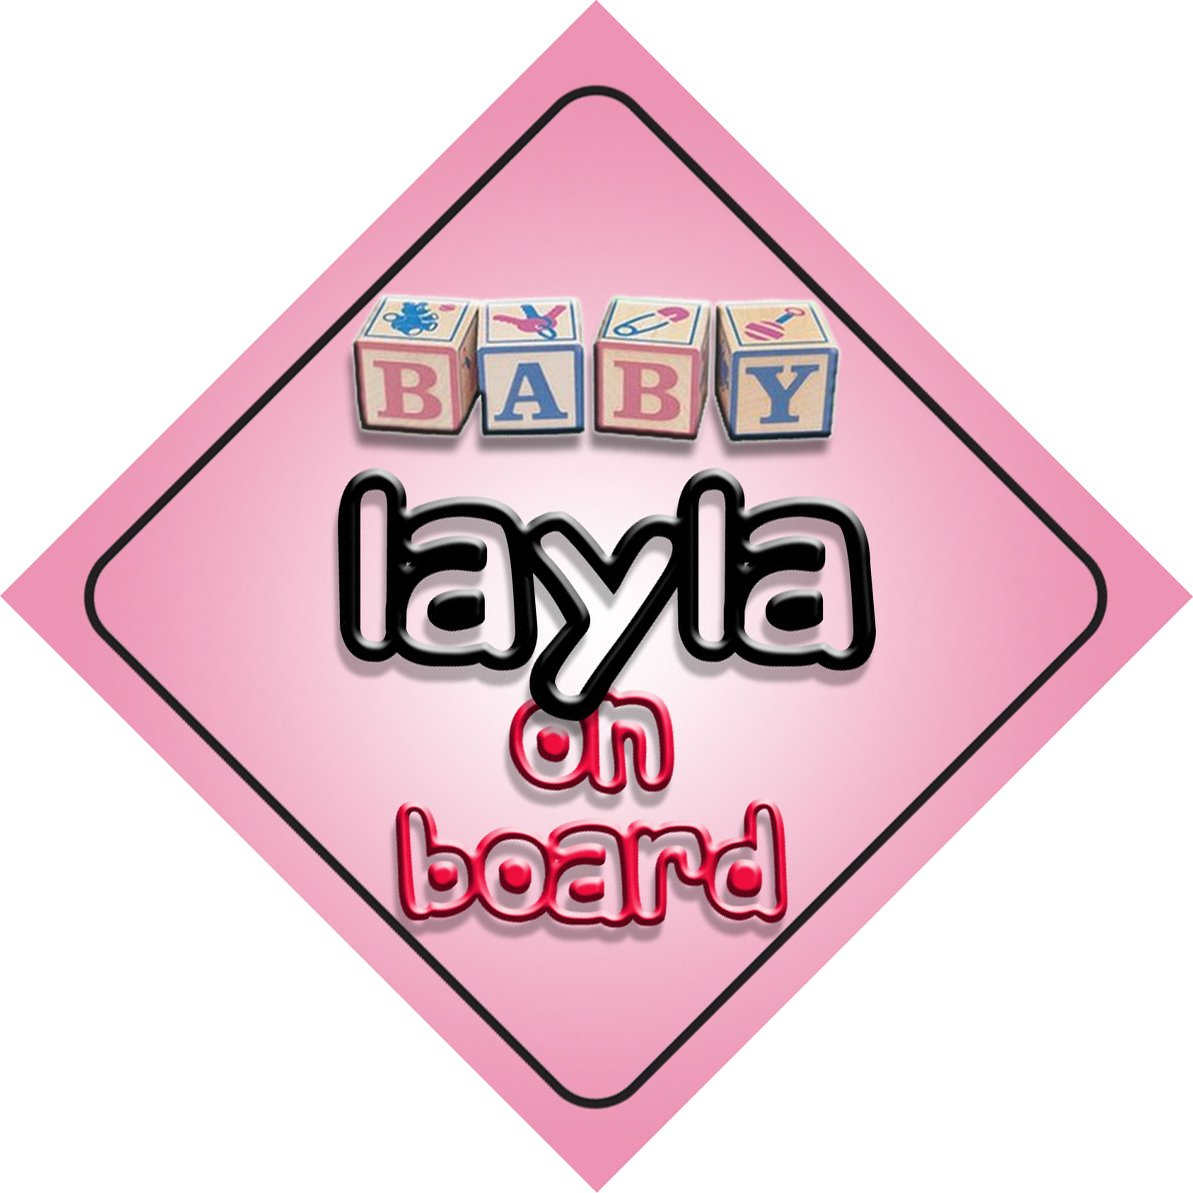 Baby Girl Layla on board novelty car sign gift/present for new child/newborn baby by mybabyonboard UK   B008D1F29C